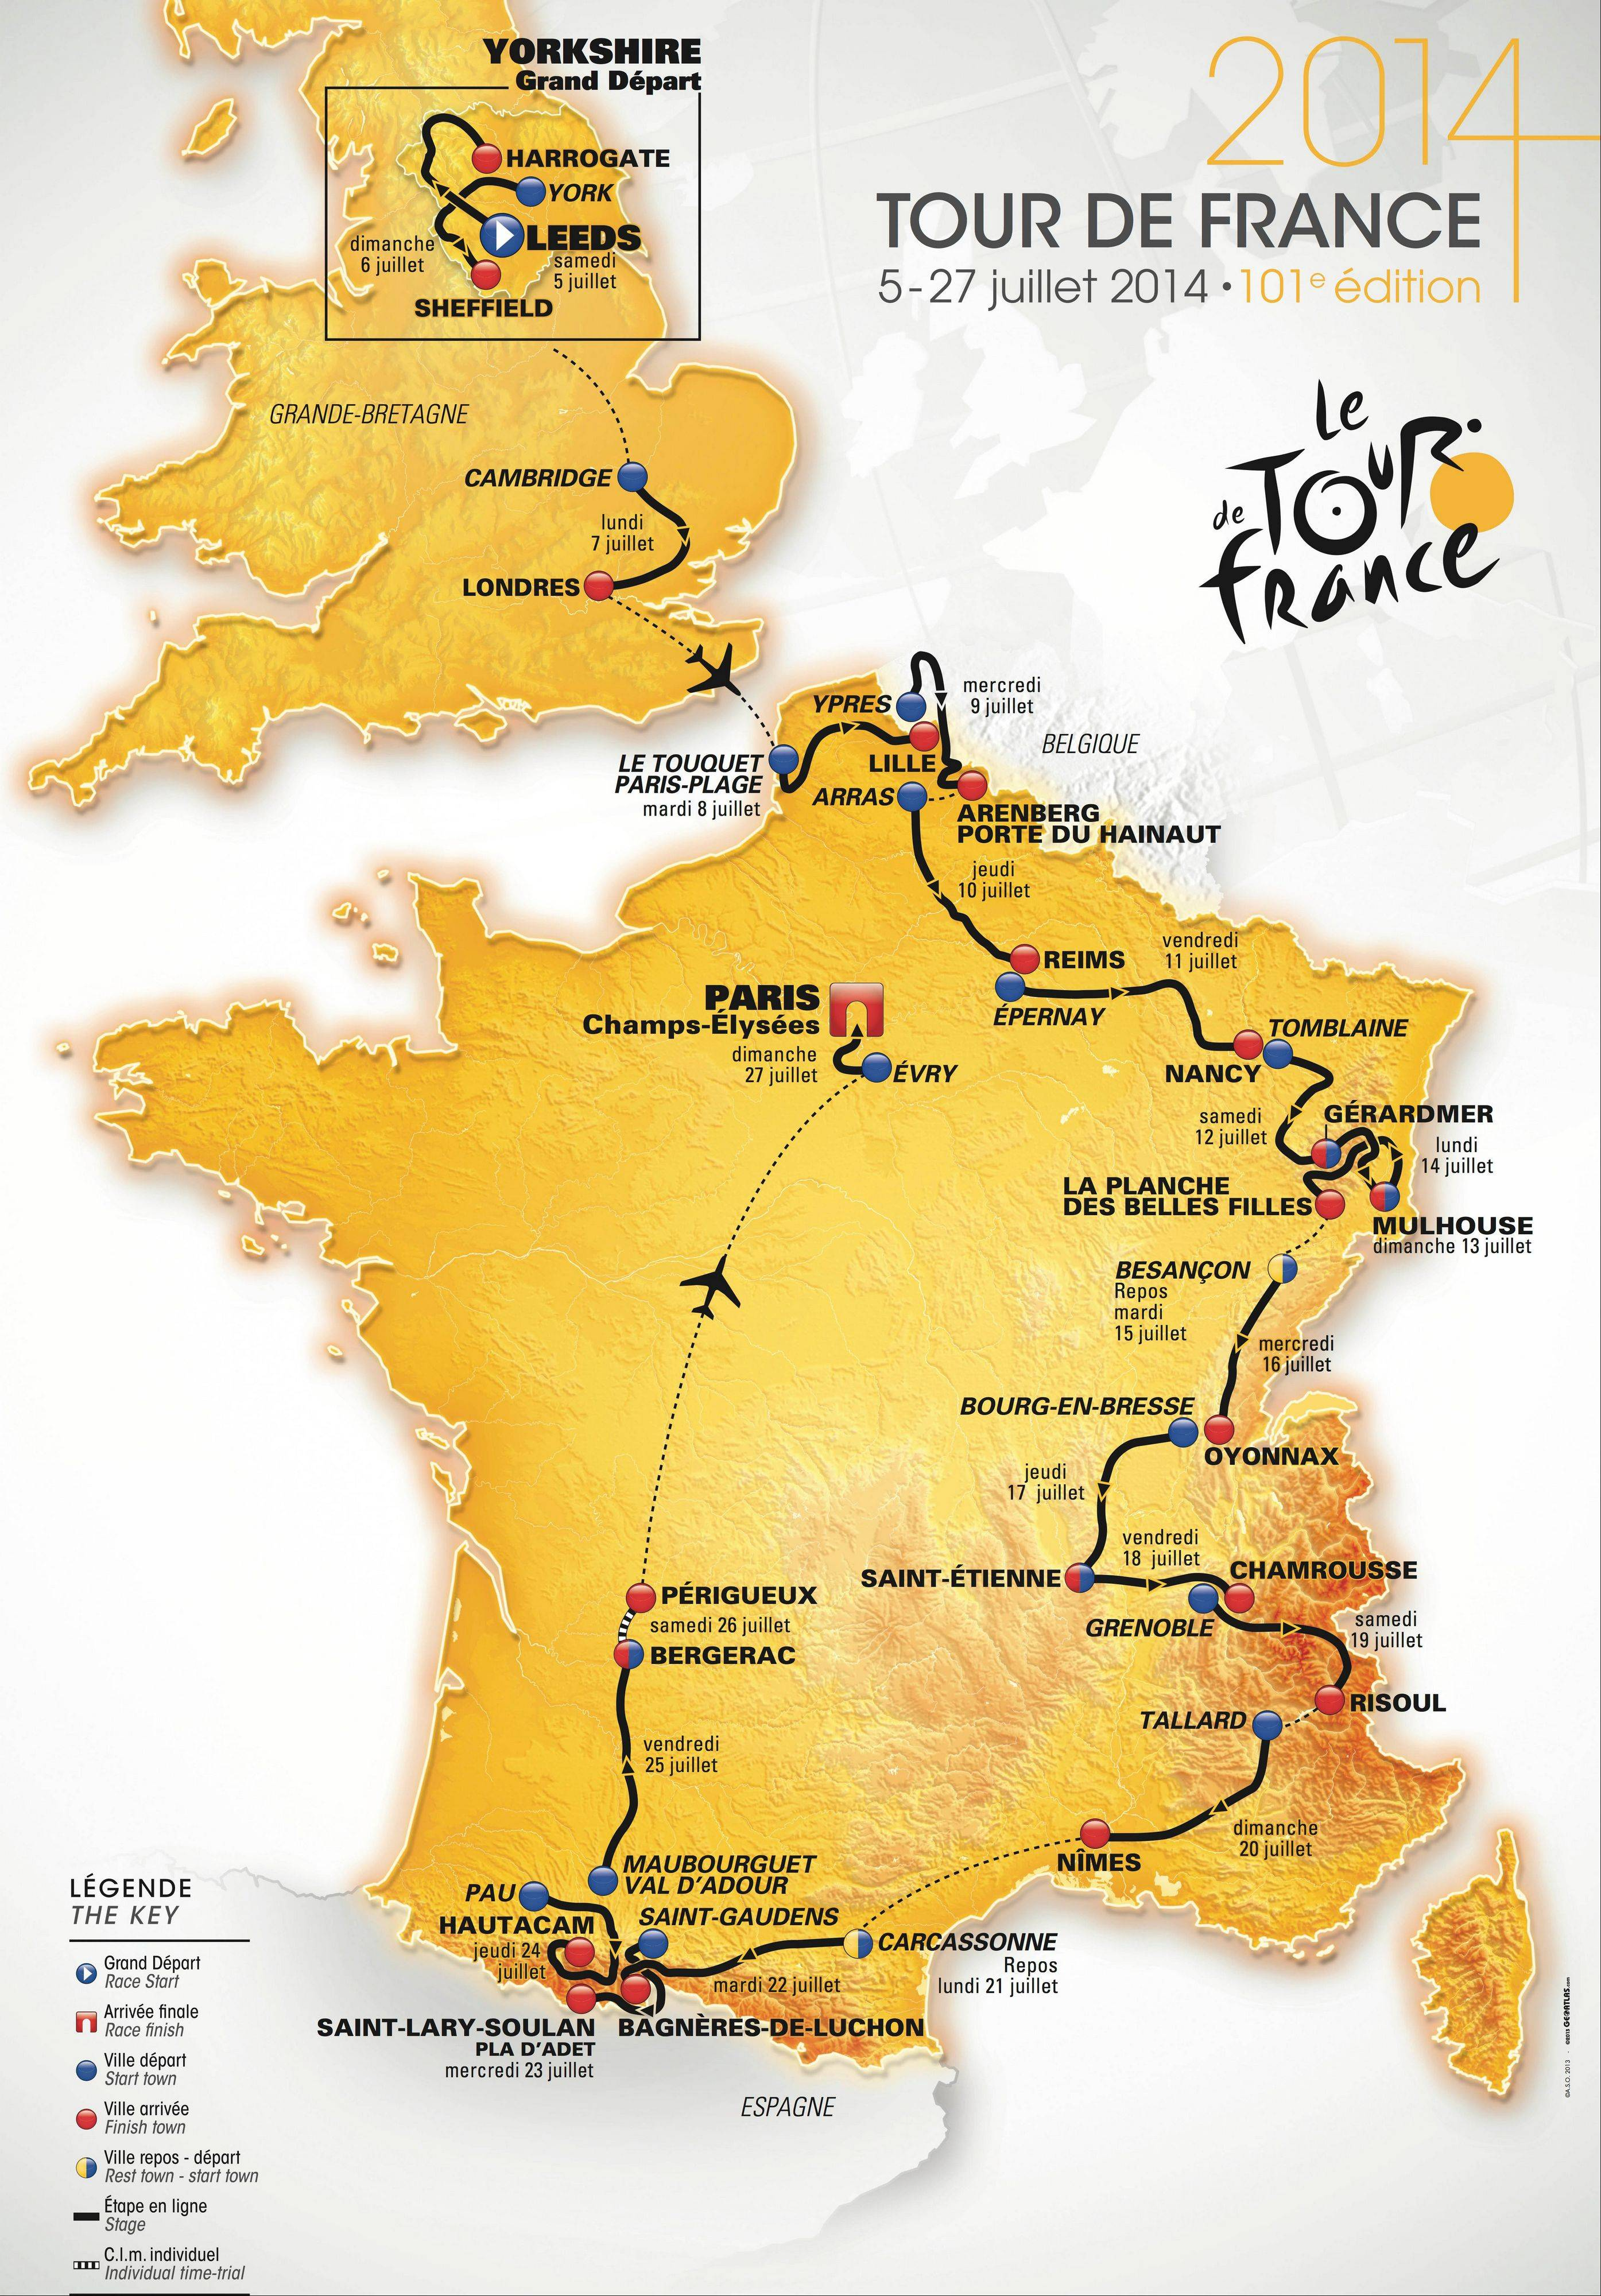 This map displays the route for the 2014 Tour de France. Starting in Leeds, England, on July 5, the 101st tour will end 22 days later on the Champs-�lys�es in Paris.